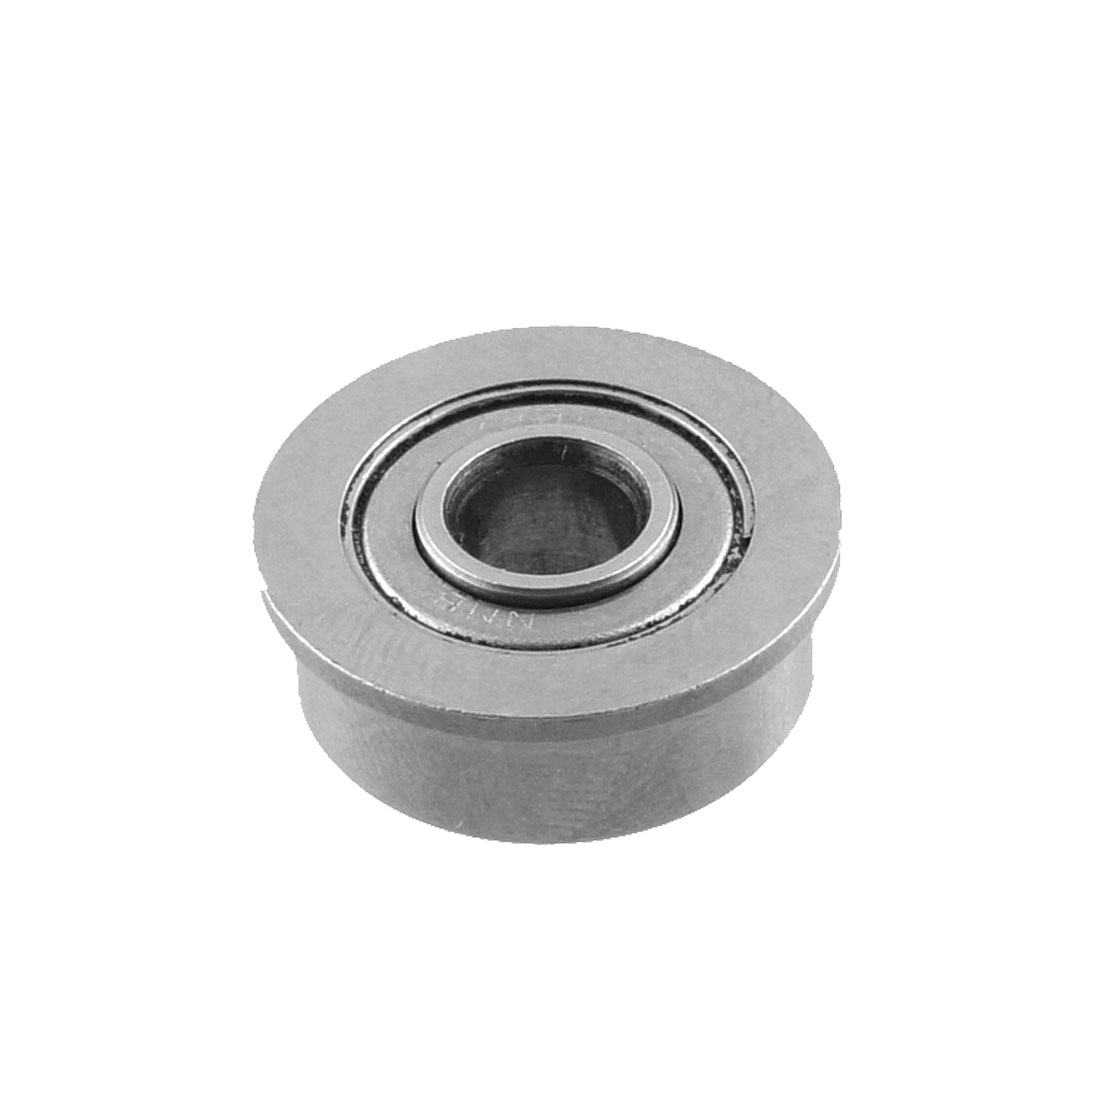 Radial Shielded 14.5mm x 4.5mm x 6mm Deep Groove Flanged Ball Bearing